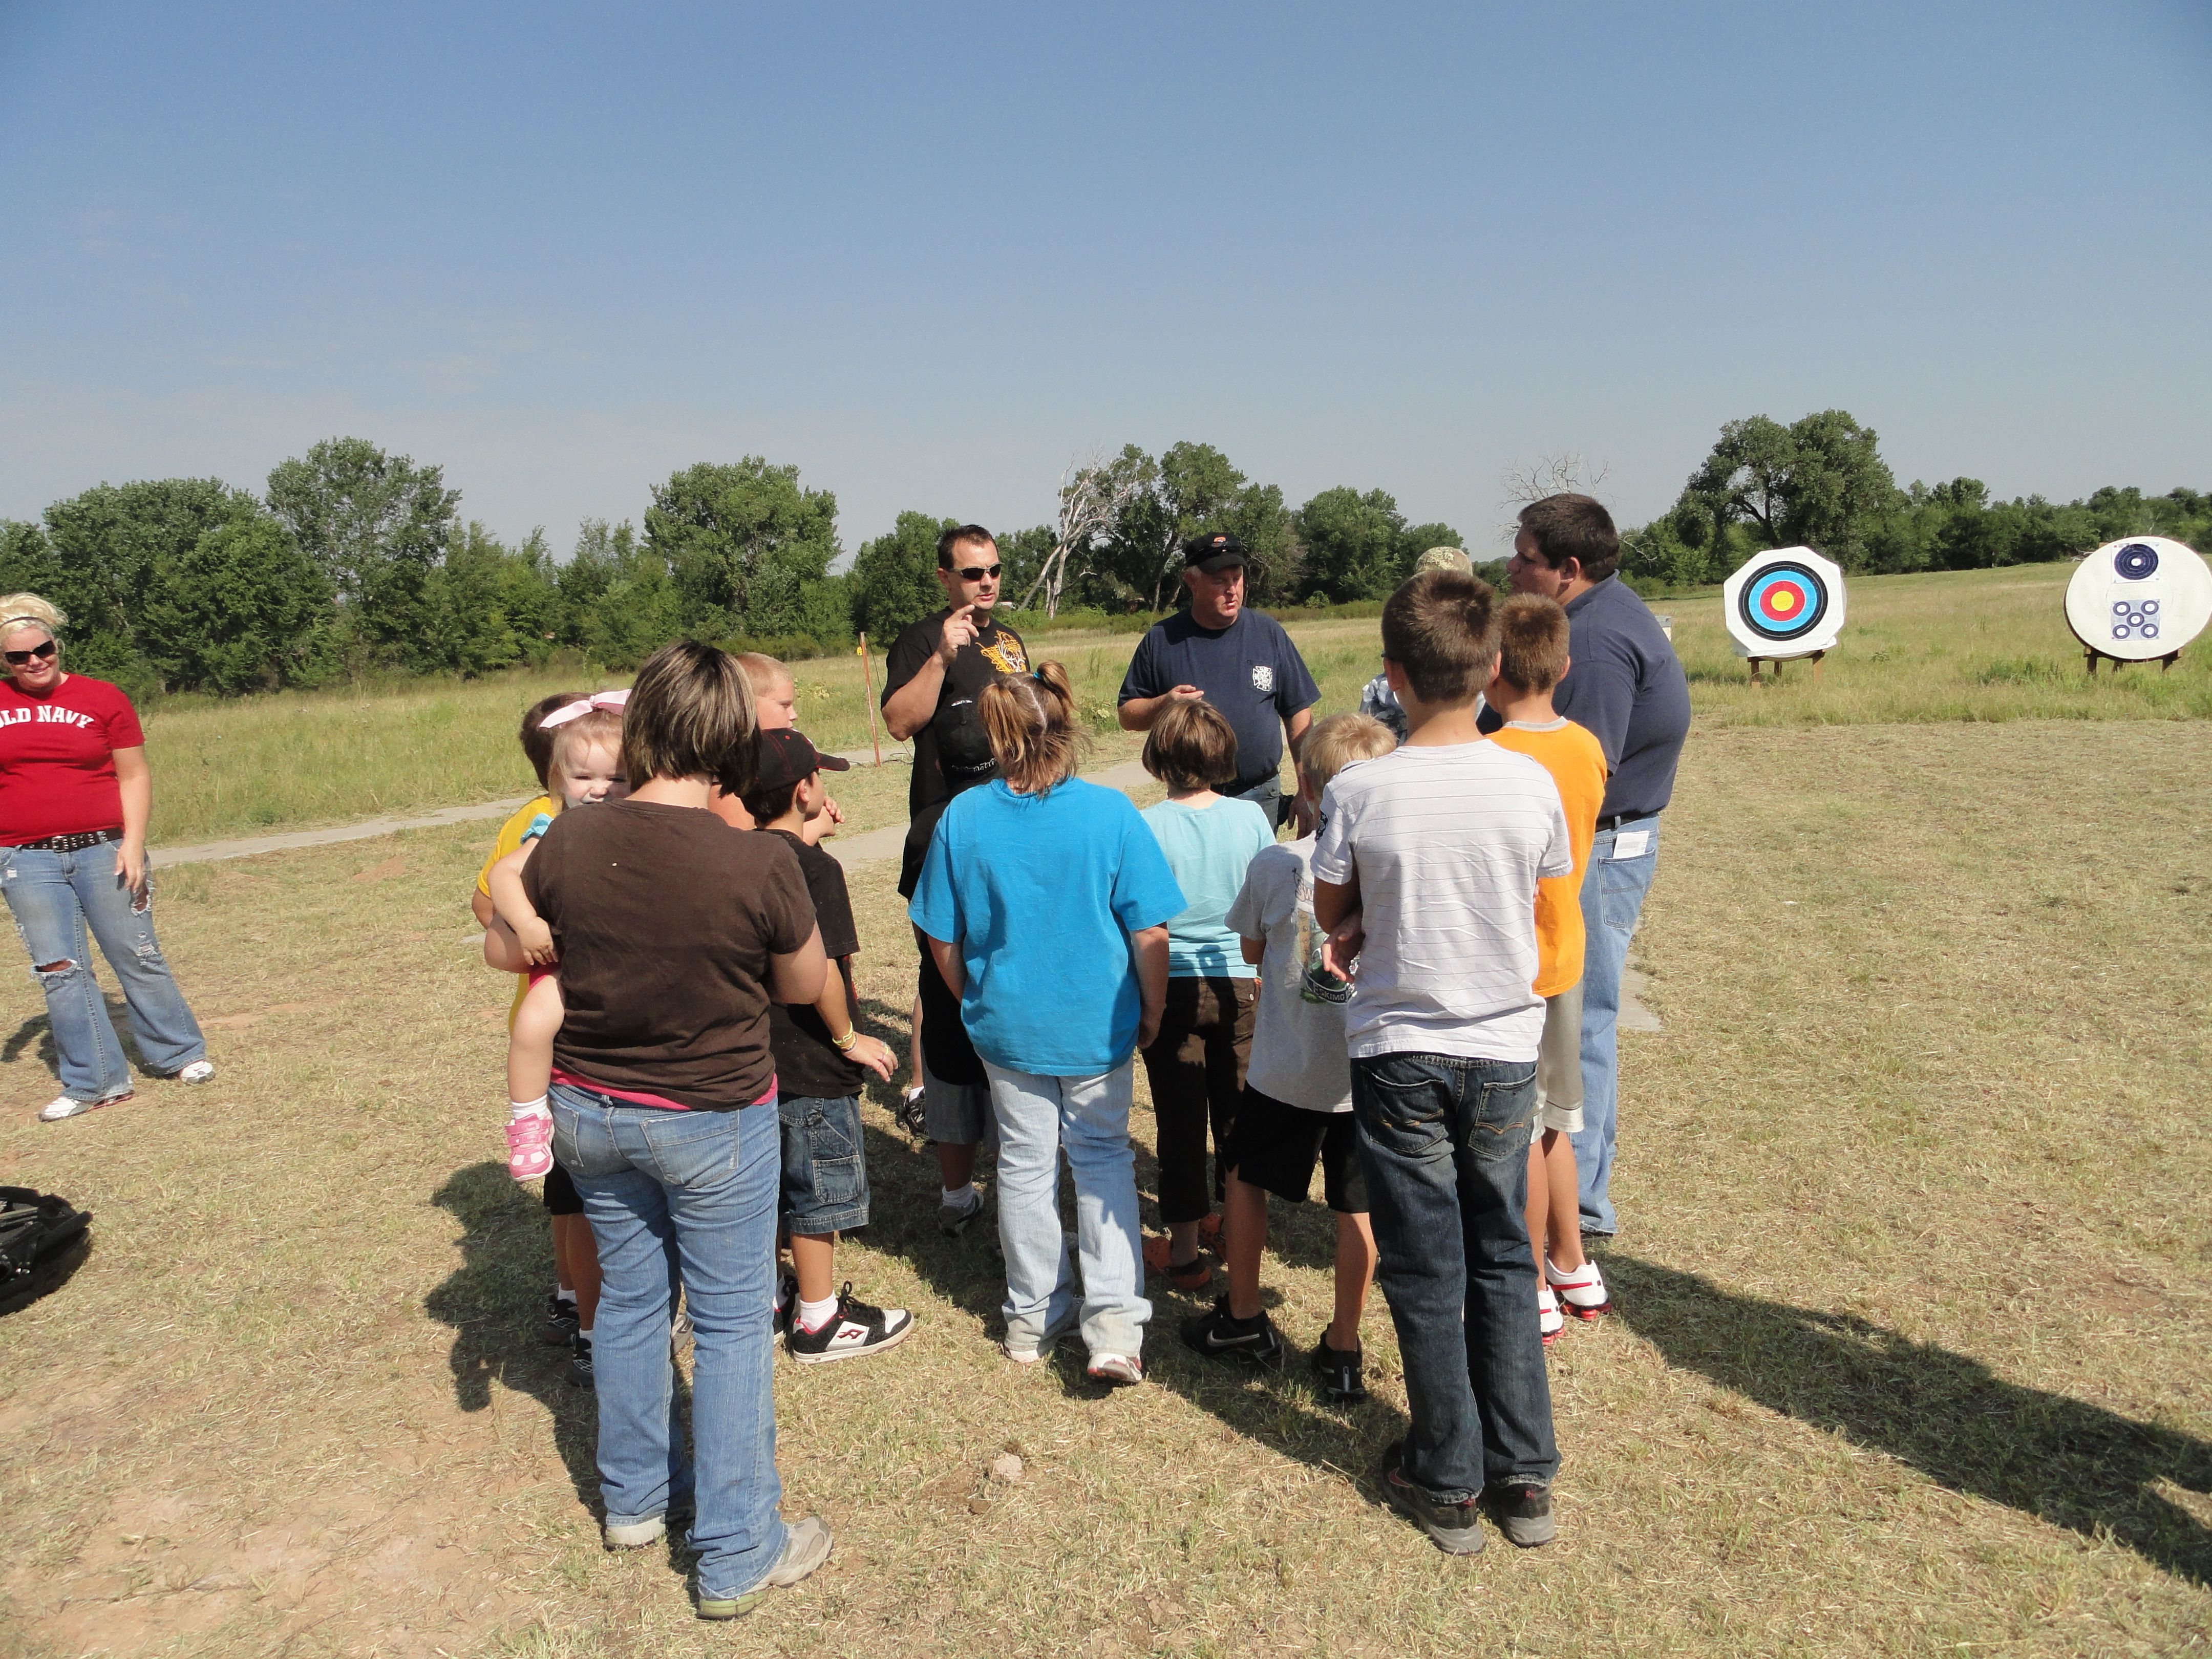 Shooting Sports Sampler - Have a demonstration of each discipline to recruit new members and answer questions.